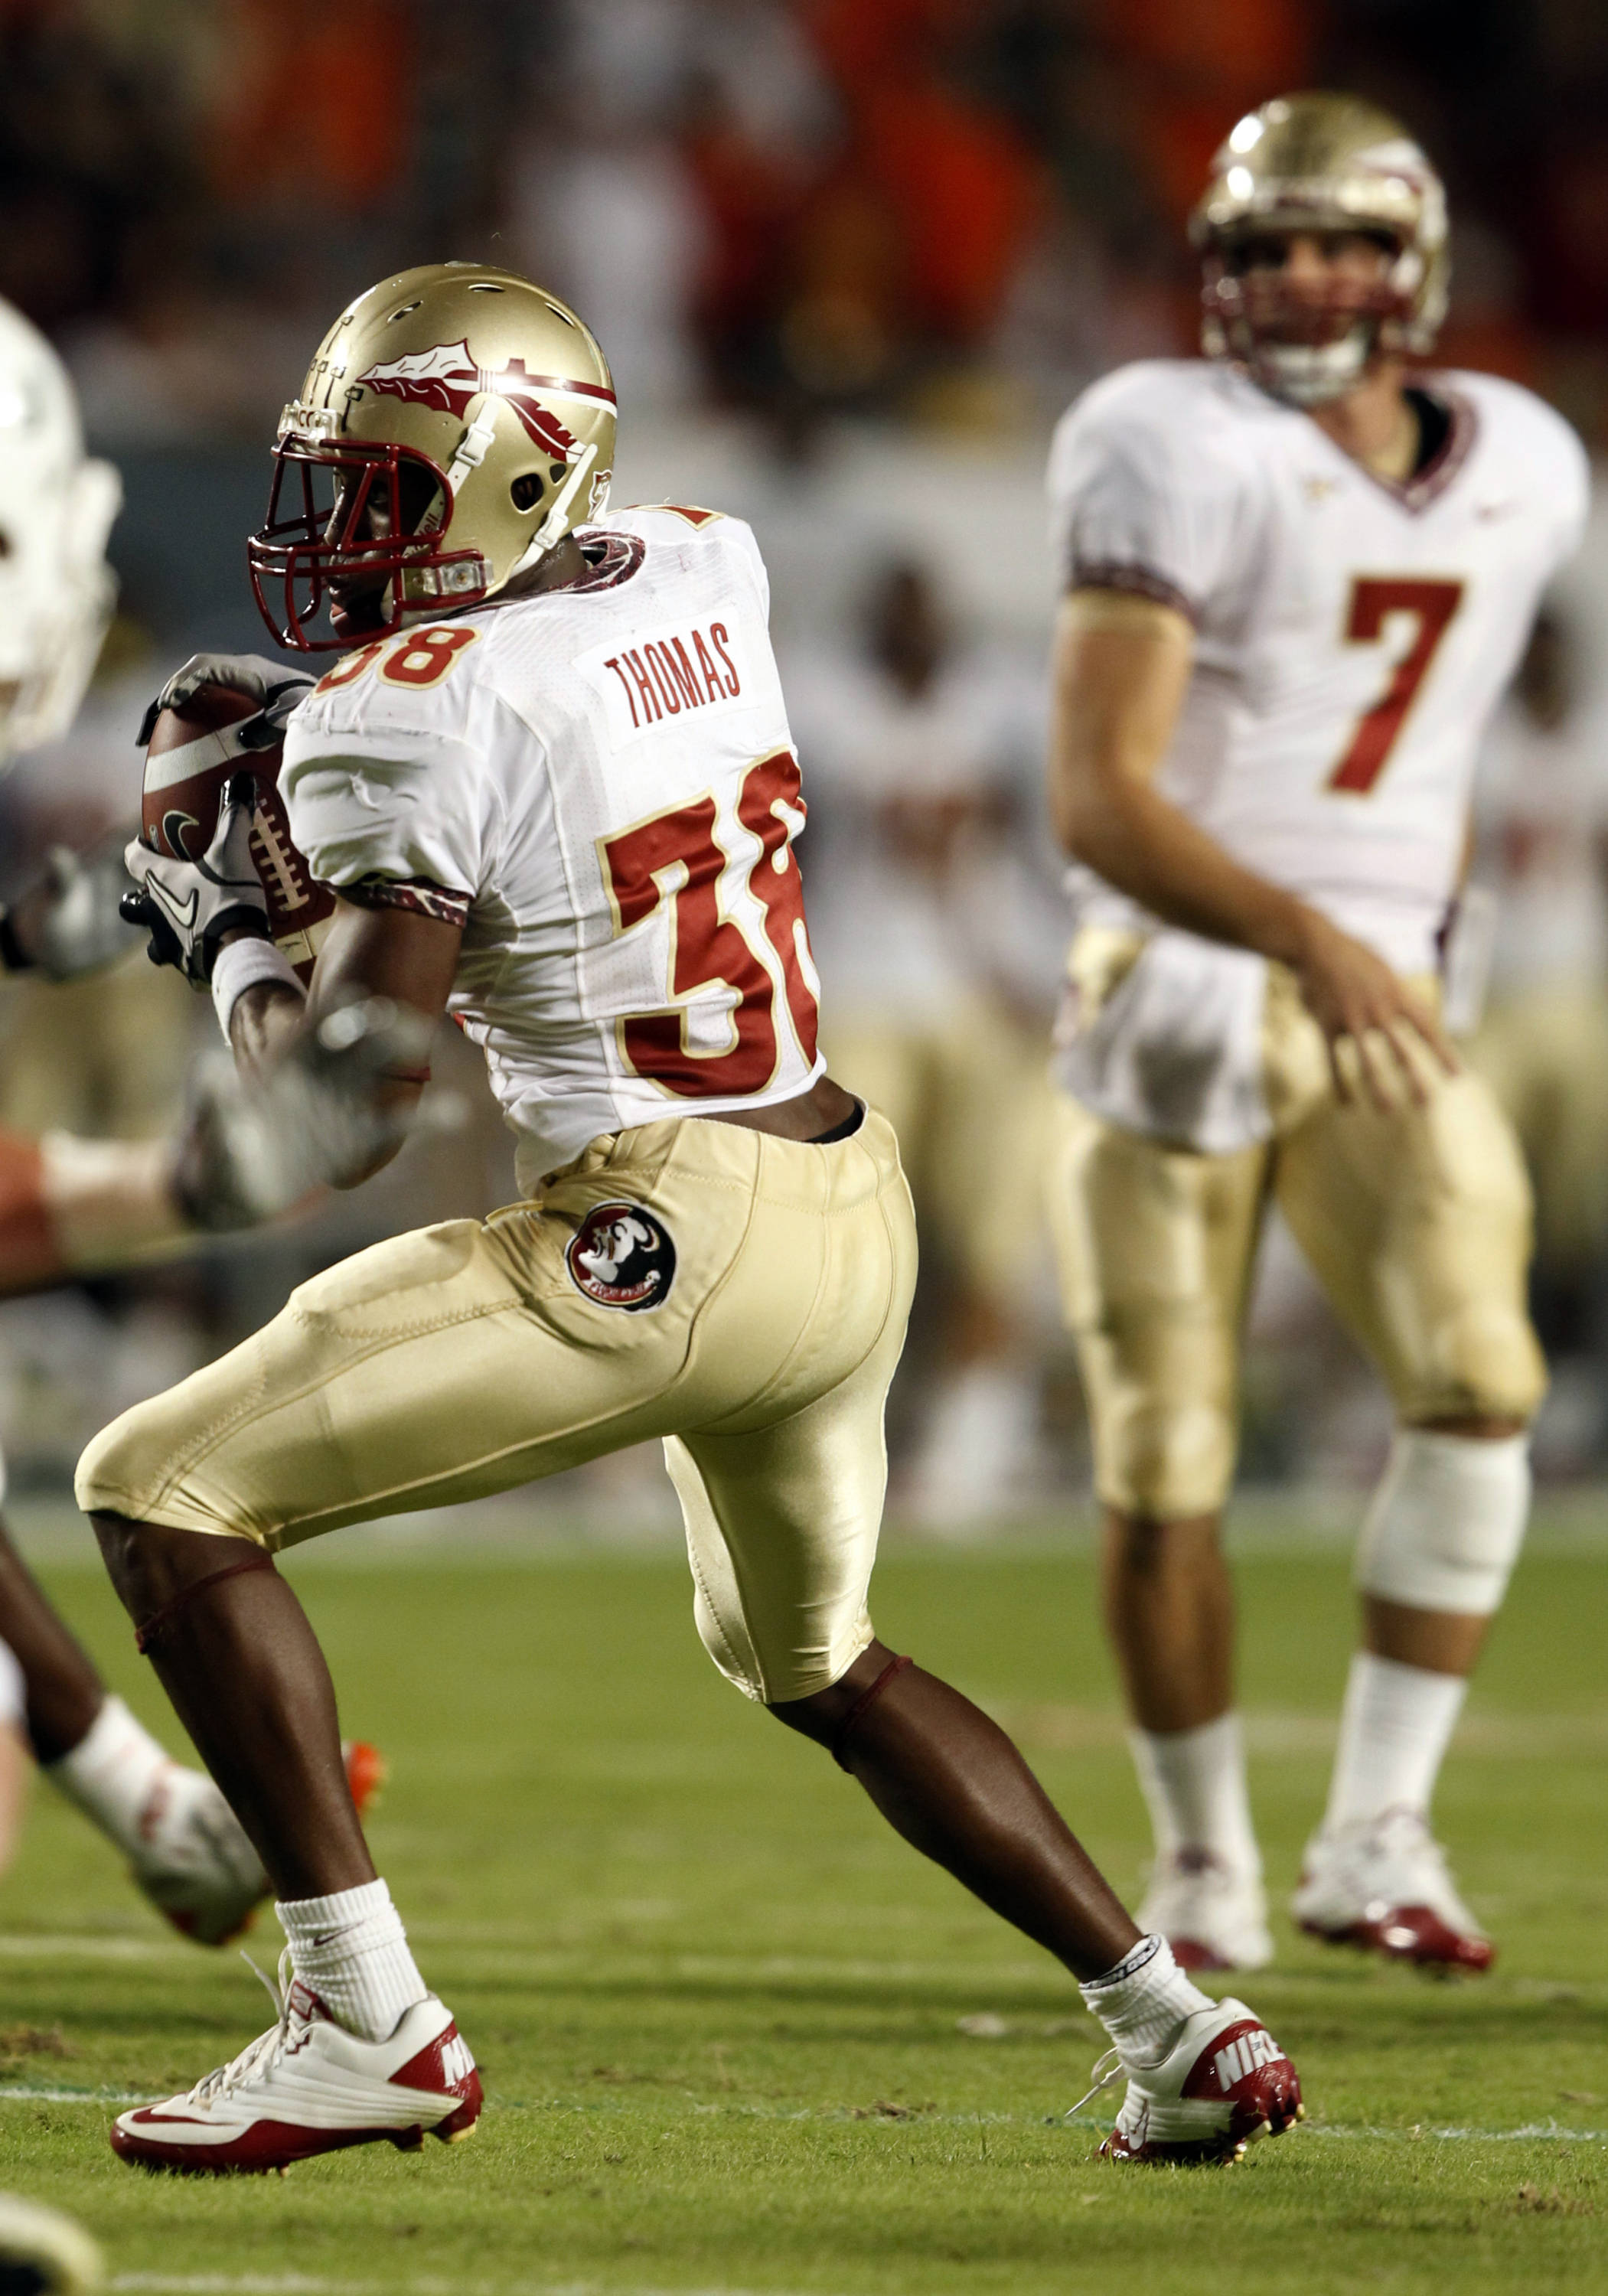 Florida State Seminoles running back Jermaine Thomas makes a catch on a pass from quarterback Christian Ponder.